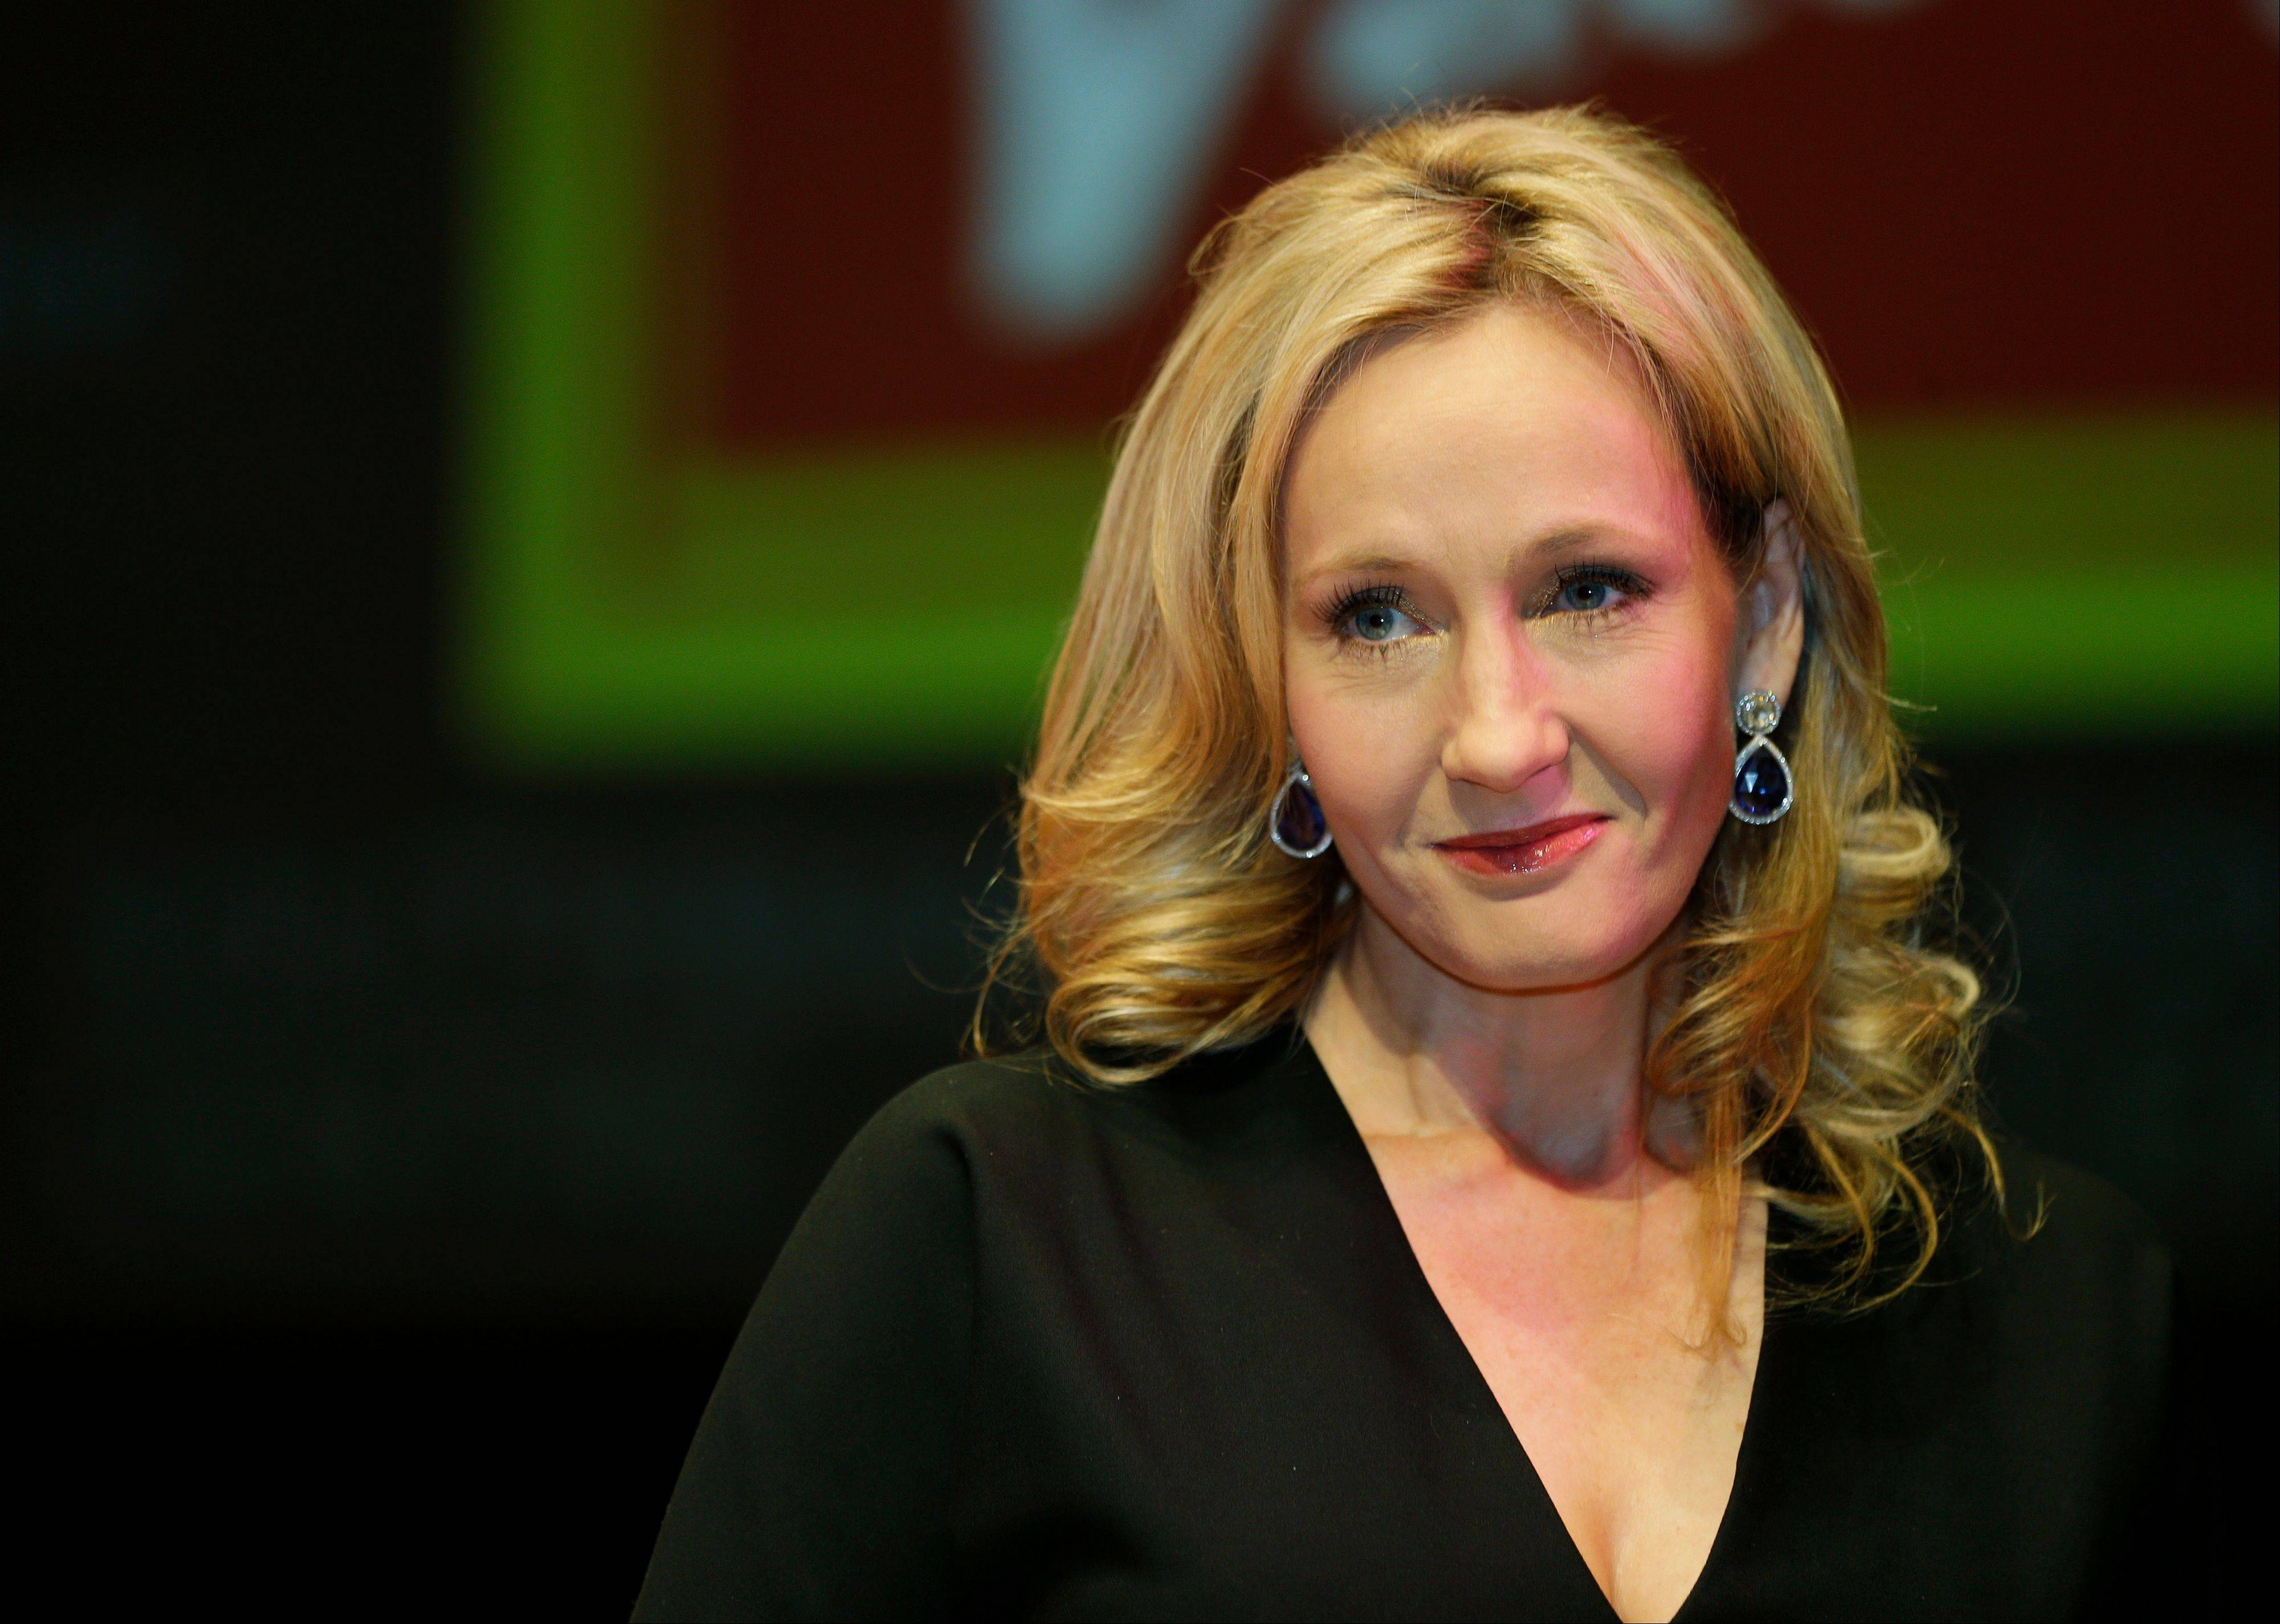 Author J.K. Rowling during a photo call to unveil her new book, entitled: 'The Casual Vacancy', at the Southbank Centre in London. Celebrities including author J.K. Rowling and actor Hugh Grant are accusing the government of letting down victims of media intrusion. They are urging lawmakers to back new measures to rein in Britainís unruly press.